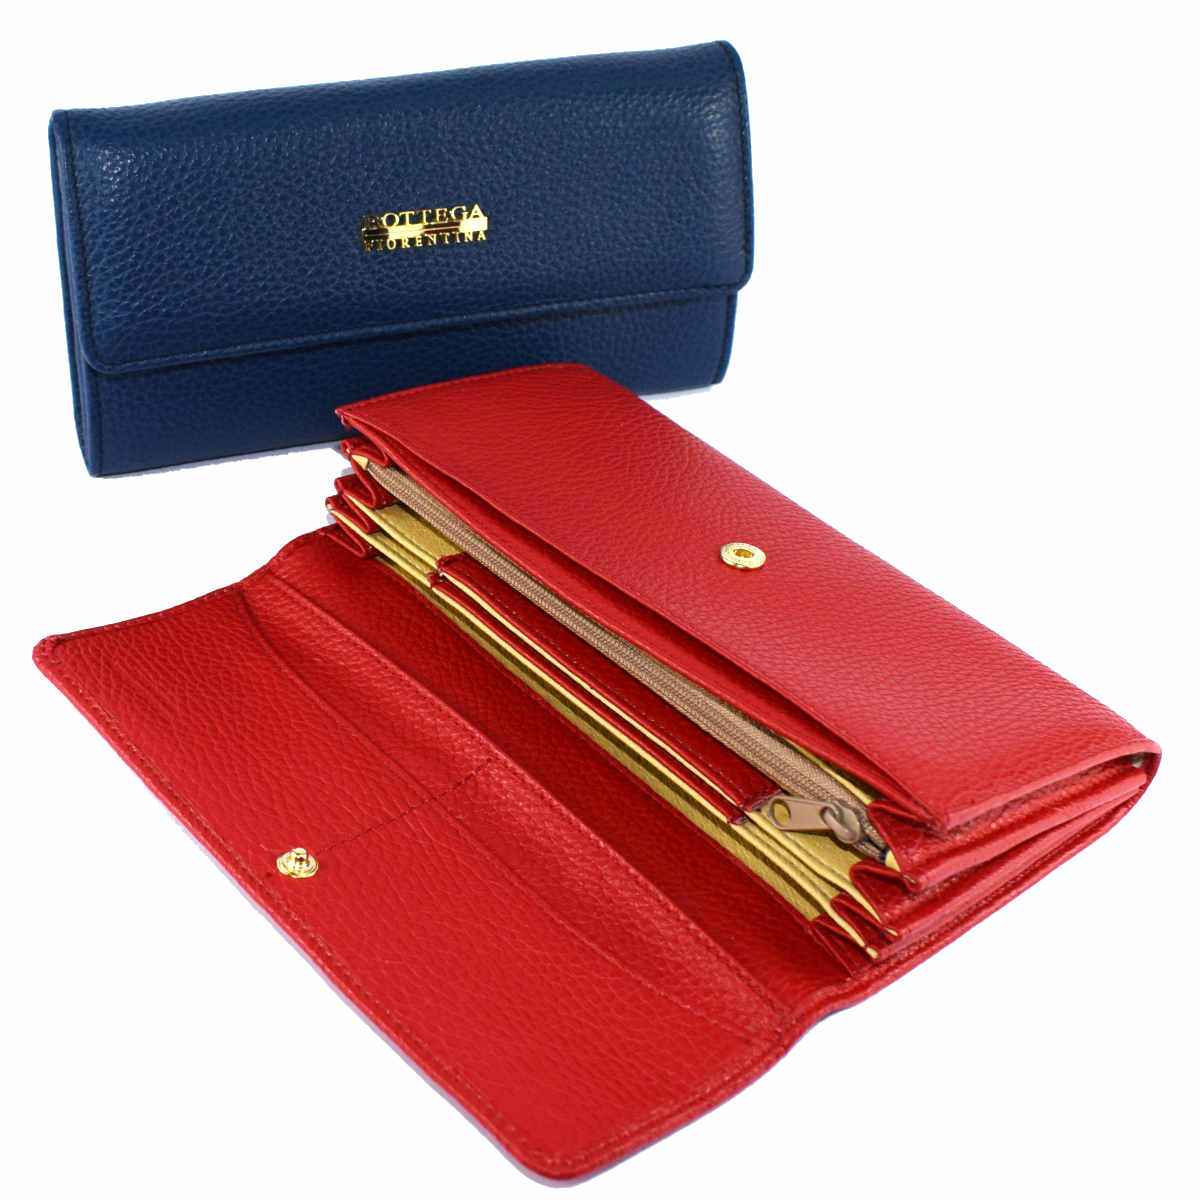 1692 WALLET MULTI POCKETS by Bottega Fiorentina